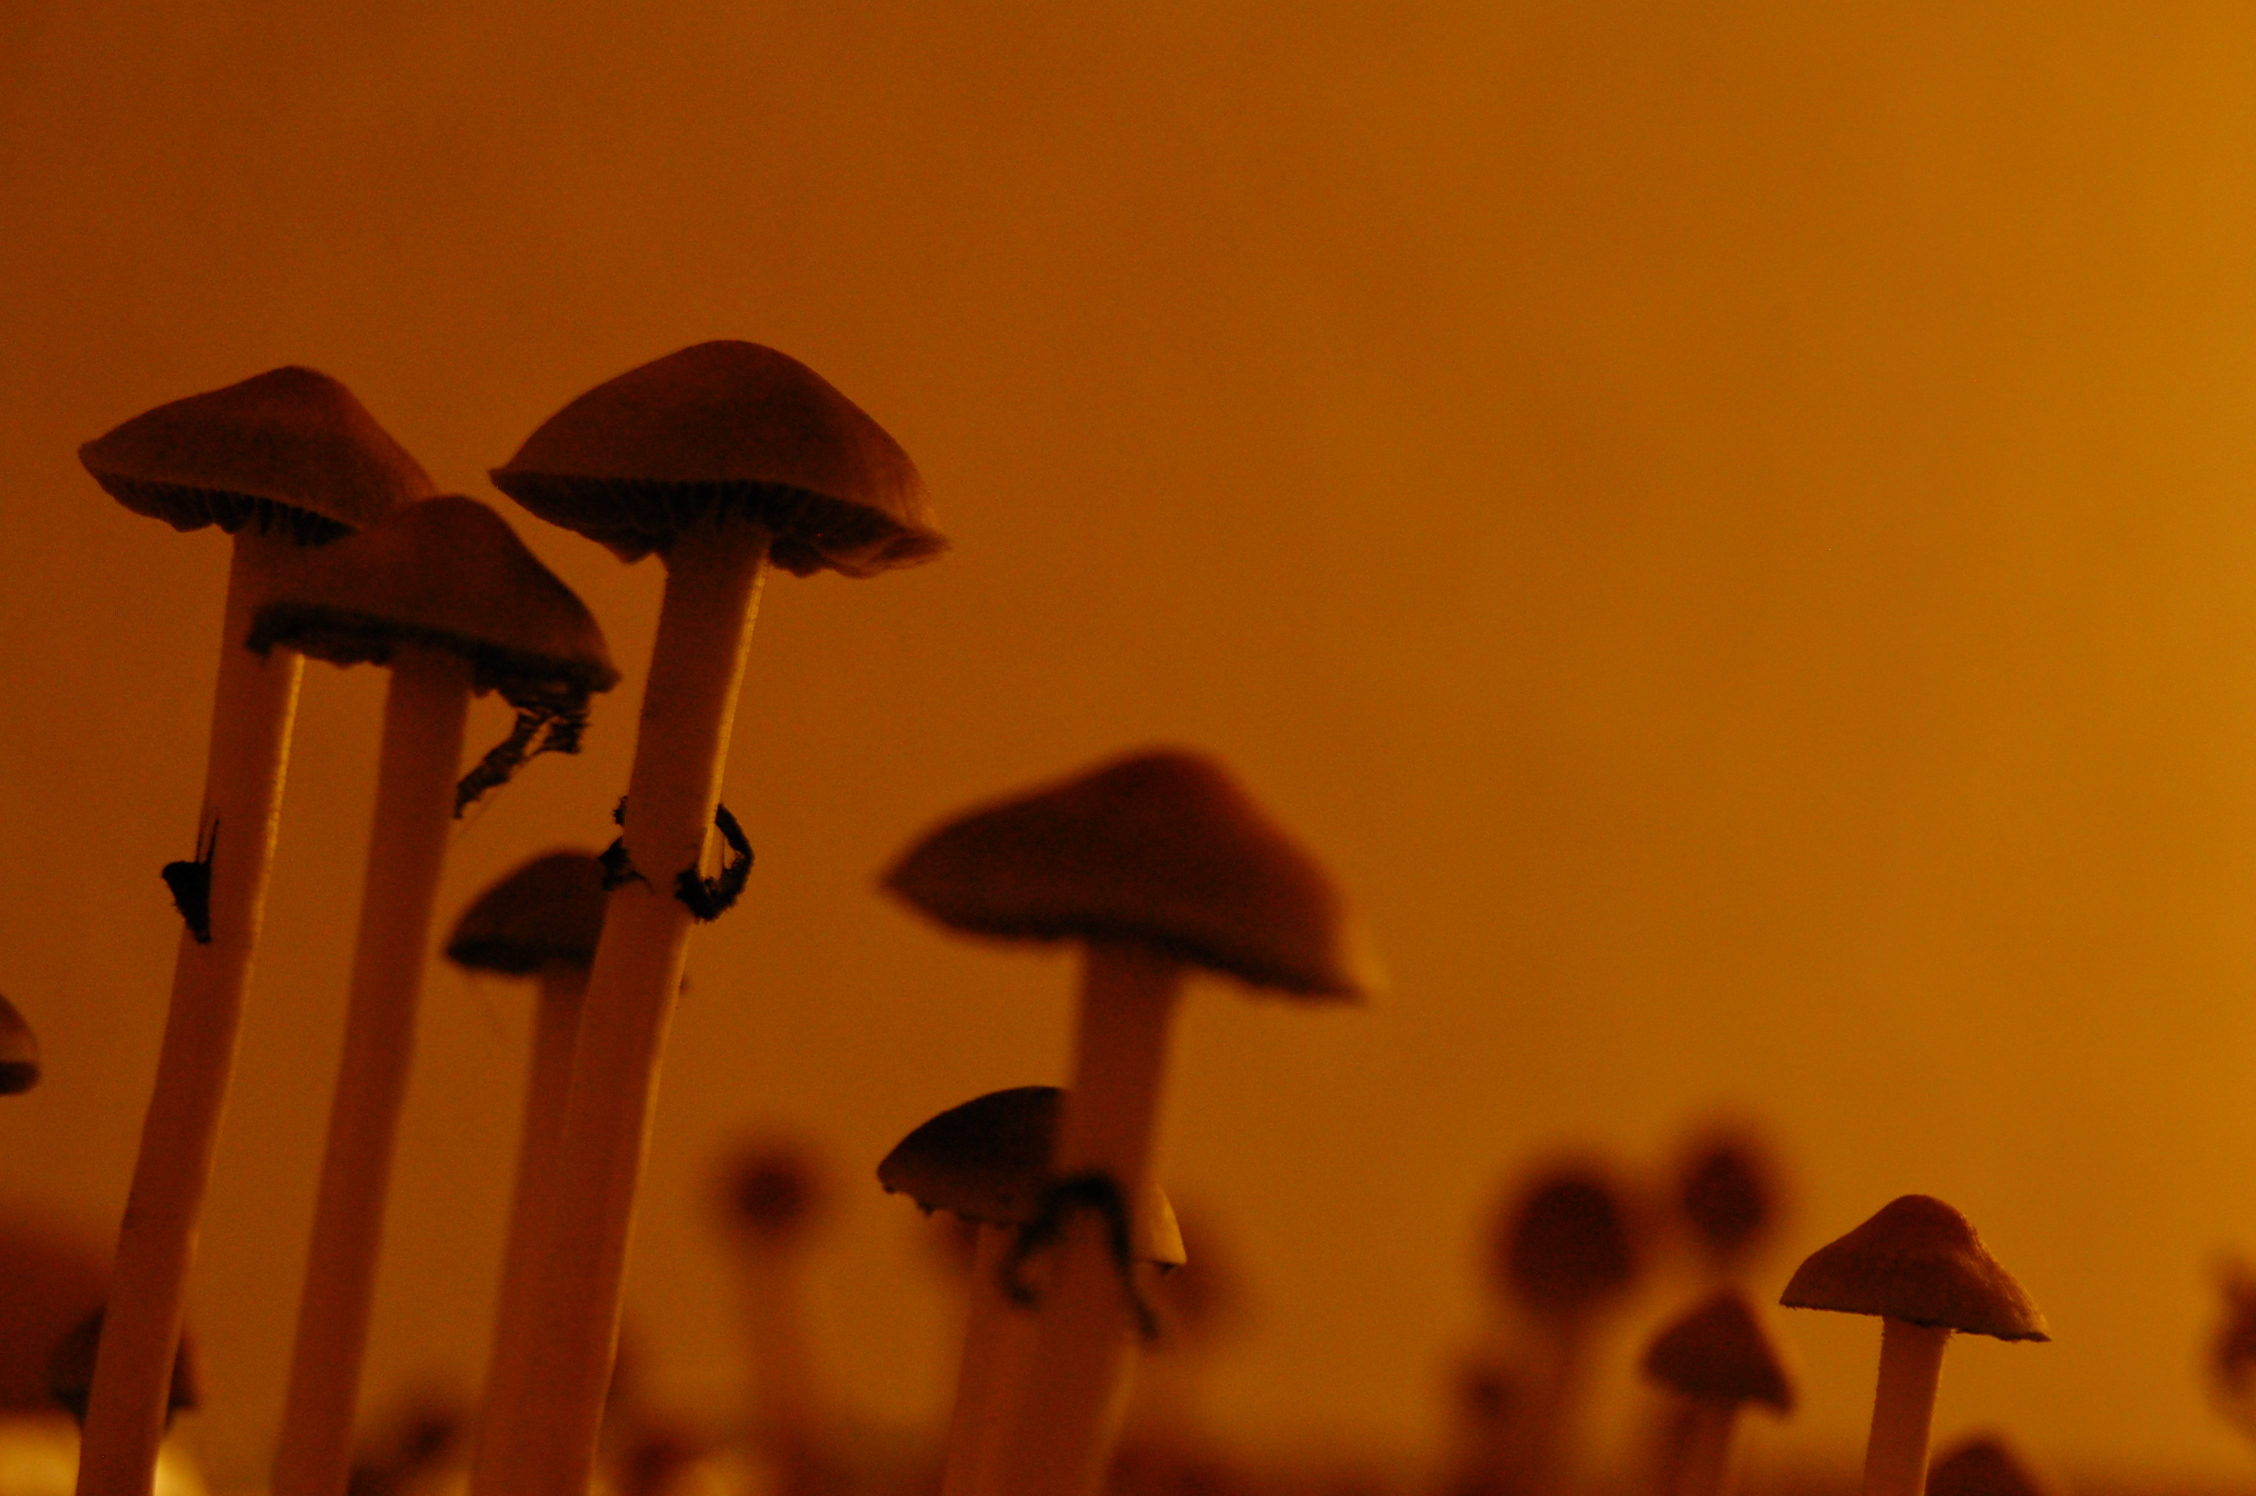 Magic Mushrooms Are Legal in New Mexico: How 'Bout That